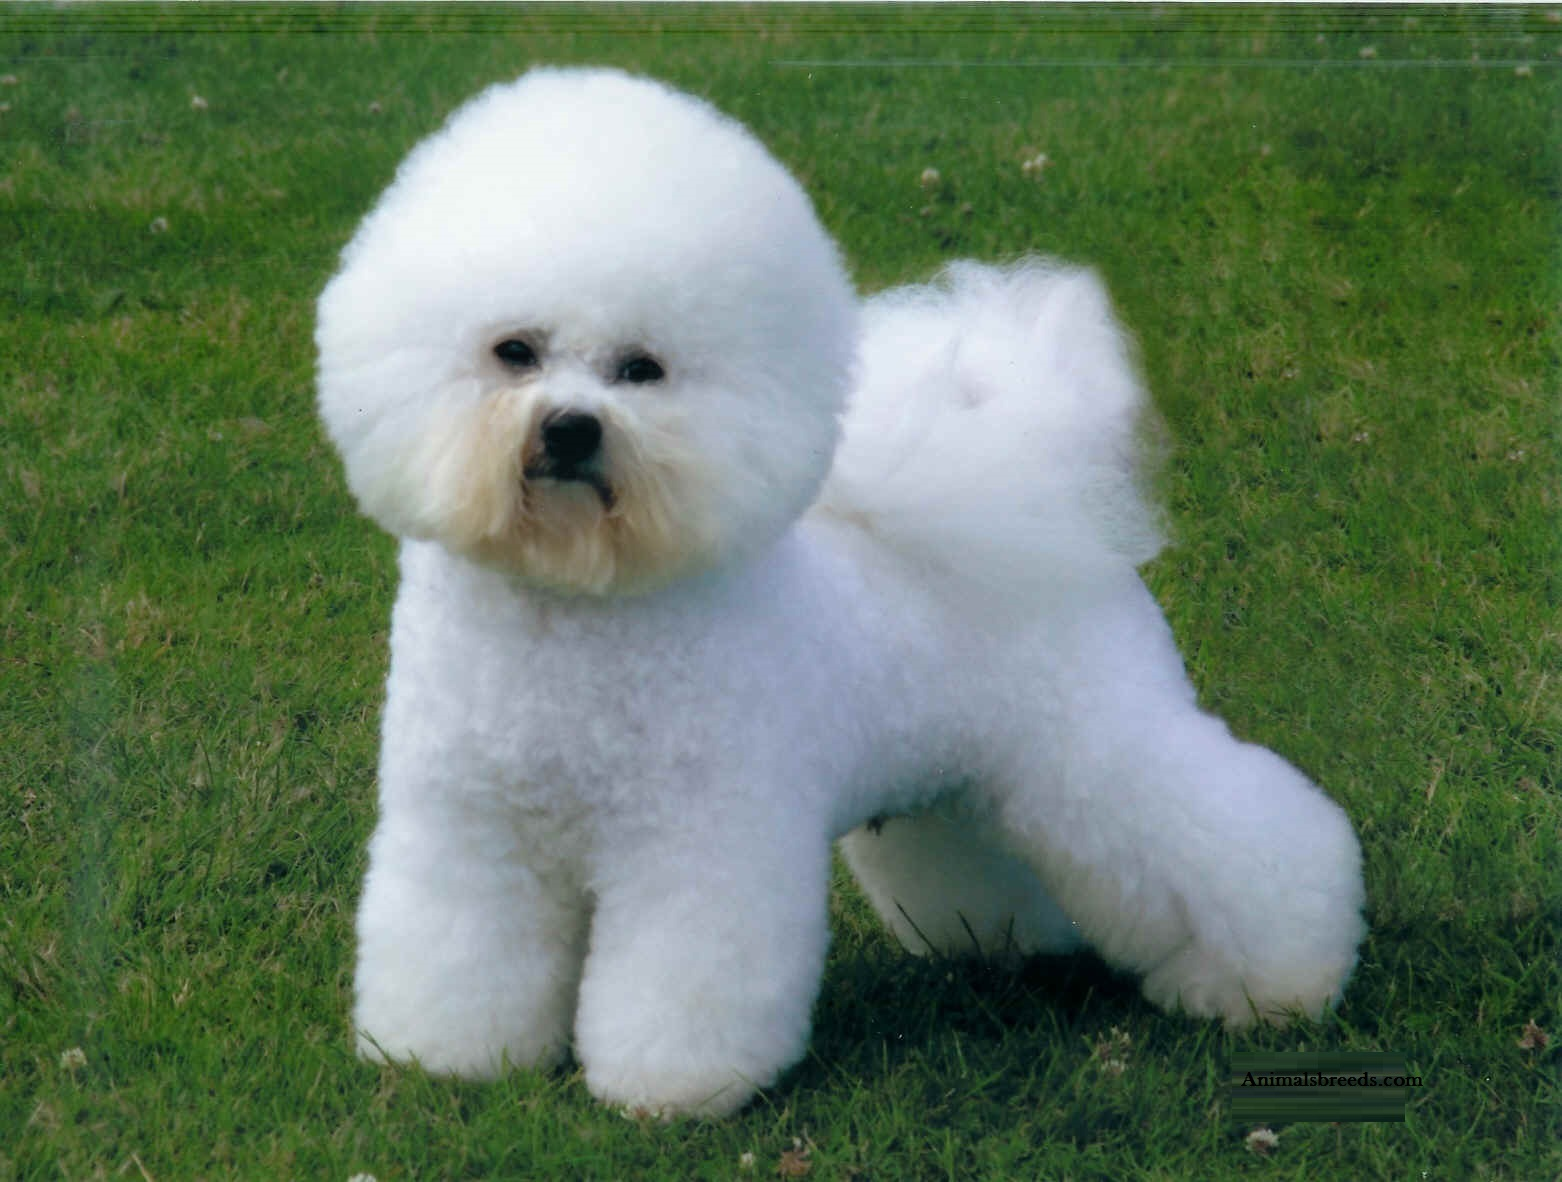 Best Food For Puppies >> Bichon Frise - Puppies, Rescue, Pictures, Information, Temperament, Characteristics | Animals Breeds